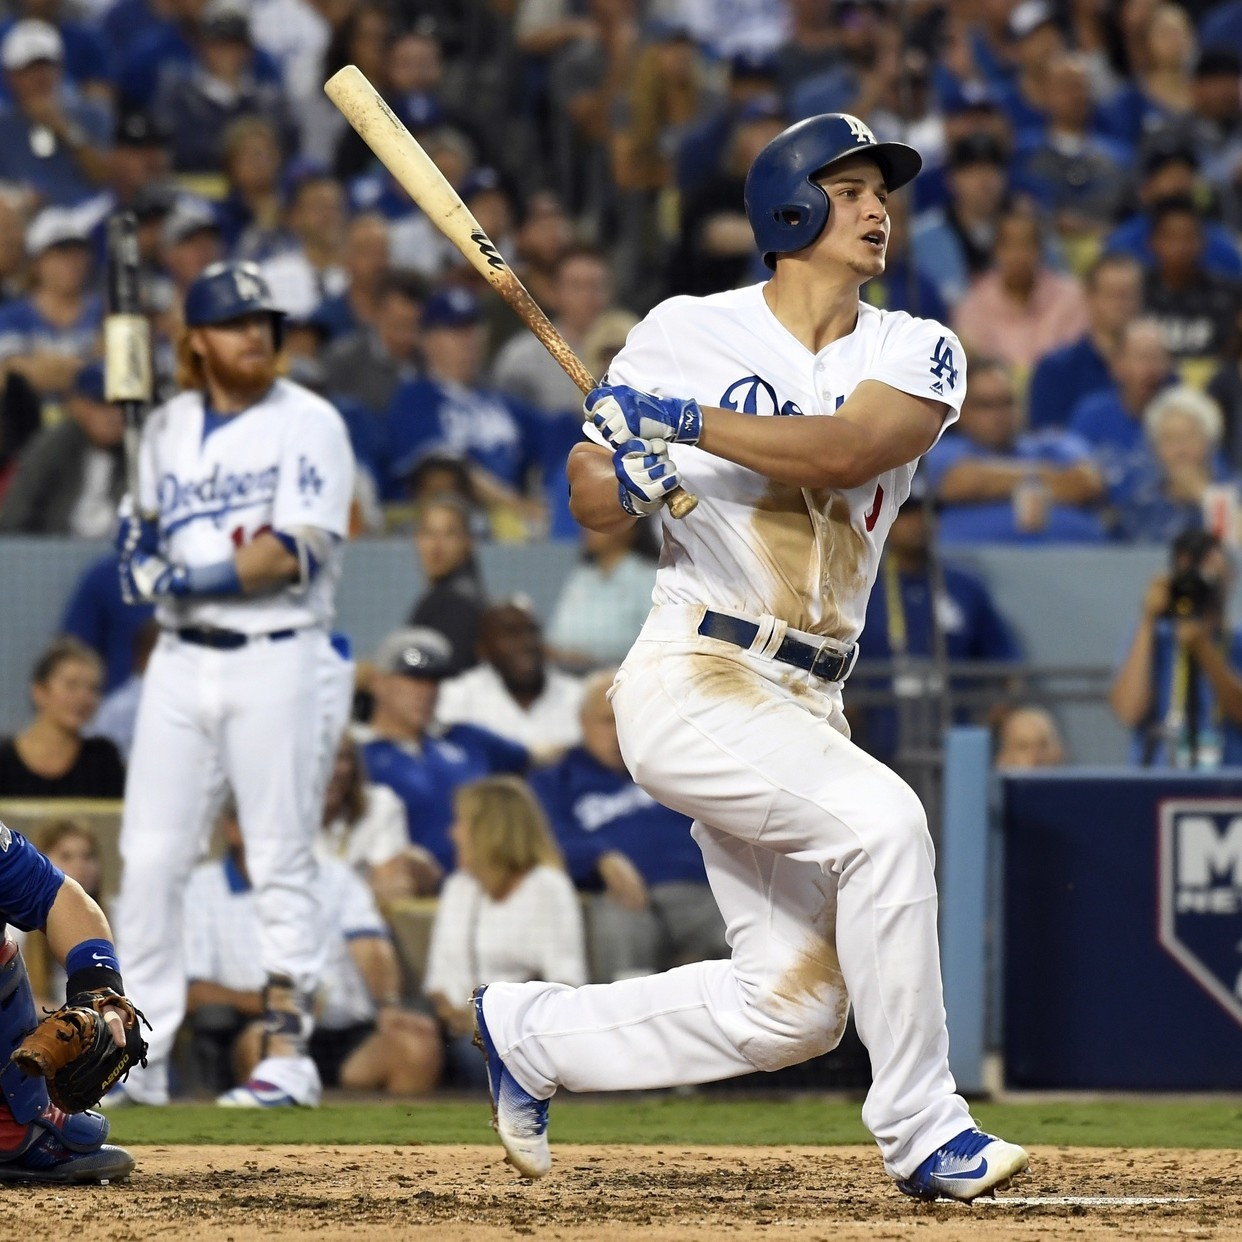 Corey-seager-is-famous-and-great-1490848081.jpg?crop=0